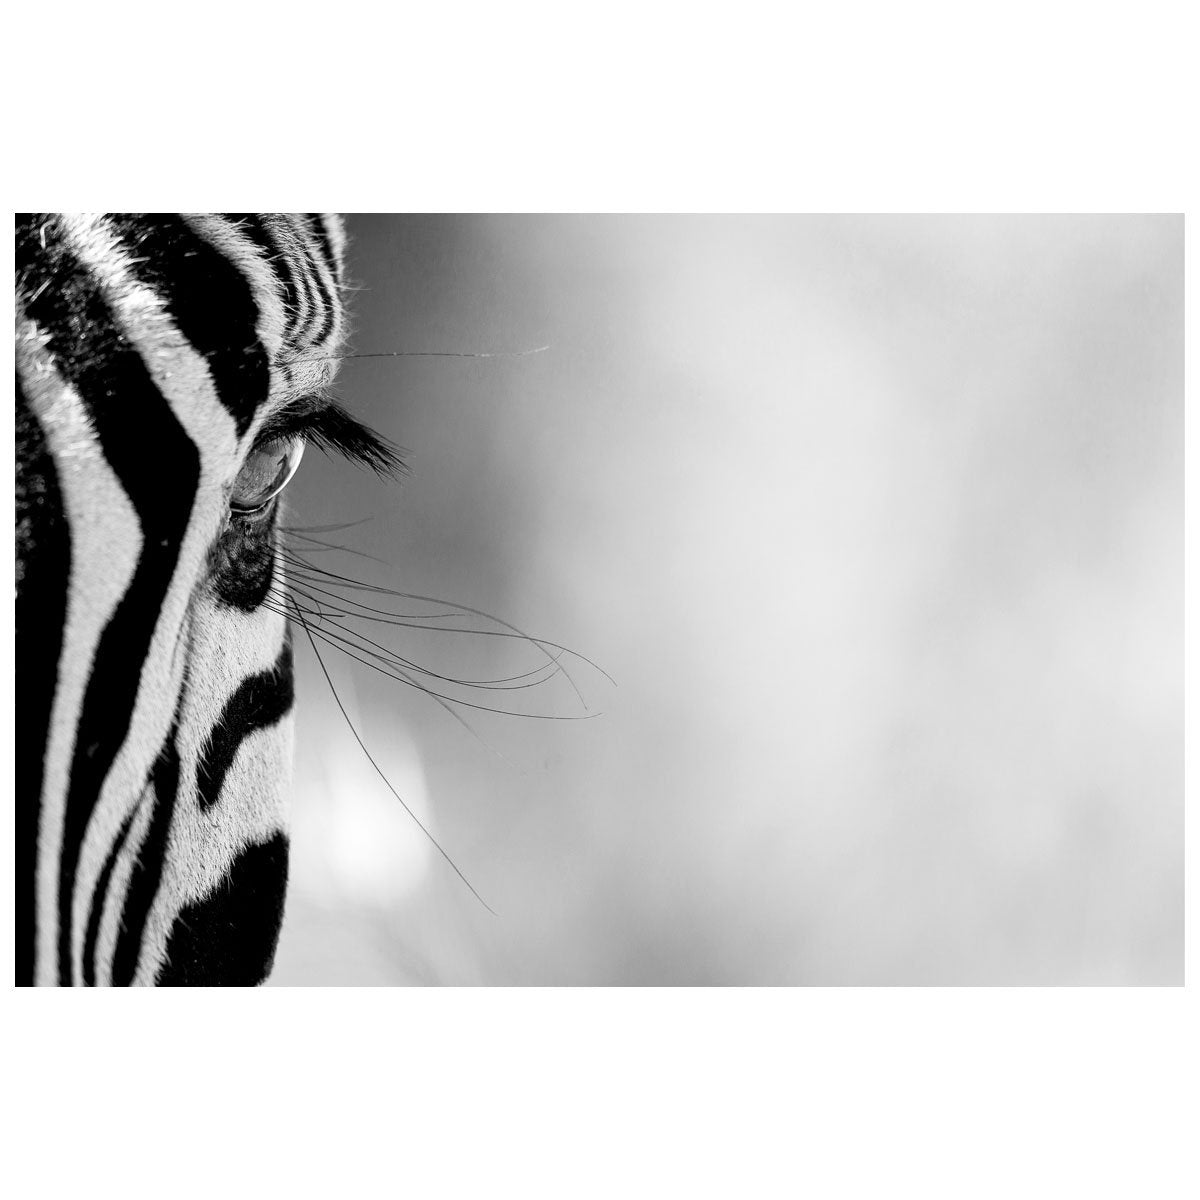 LASHES by Jackie Wild Photography at SARZA. art prints, be that one, canvas prints, framed canvas, Jackie Wild Photography, Lashes, paper prints, photography, wall art, wildlife, zebras